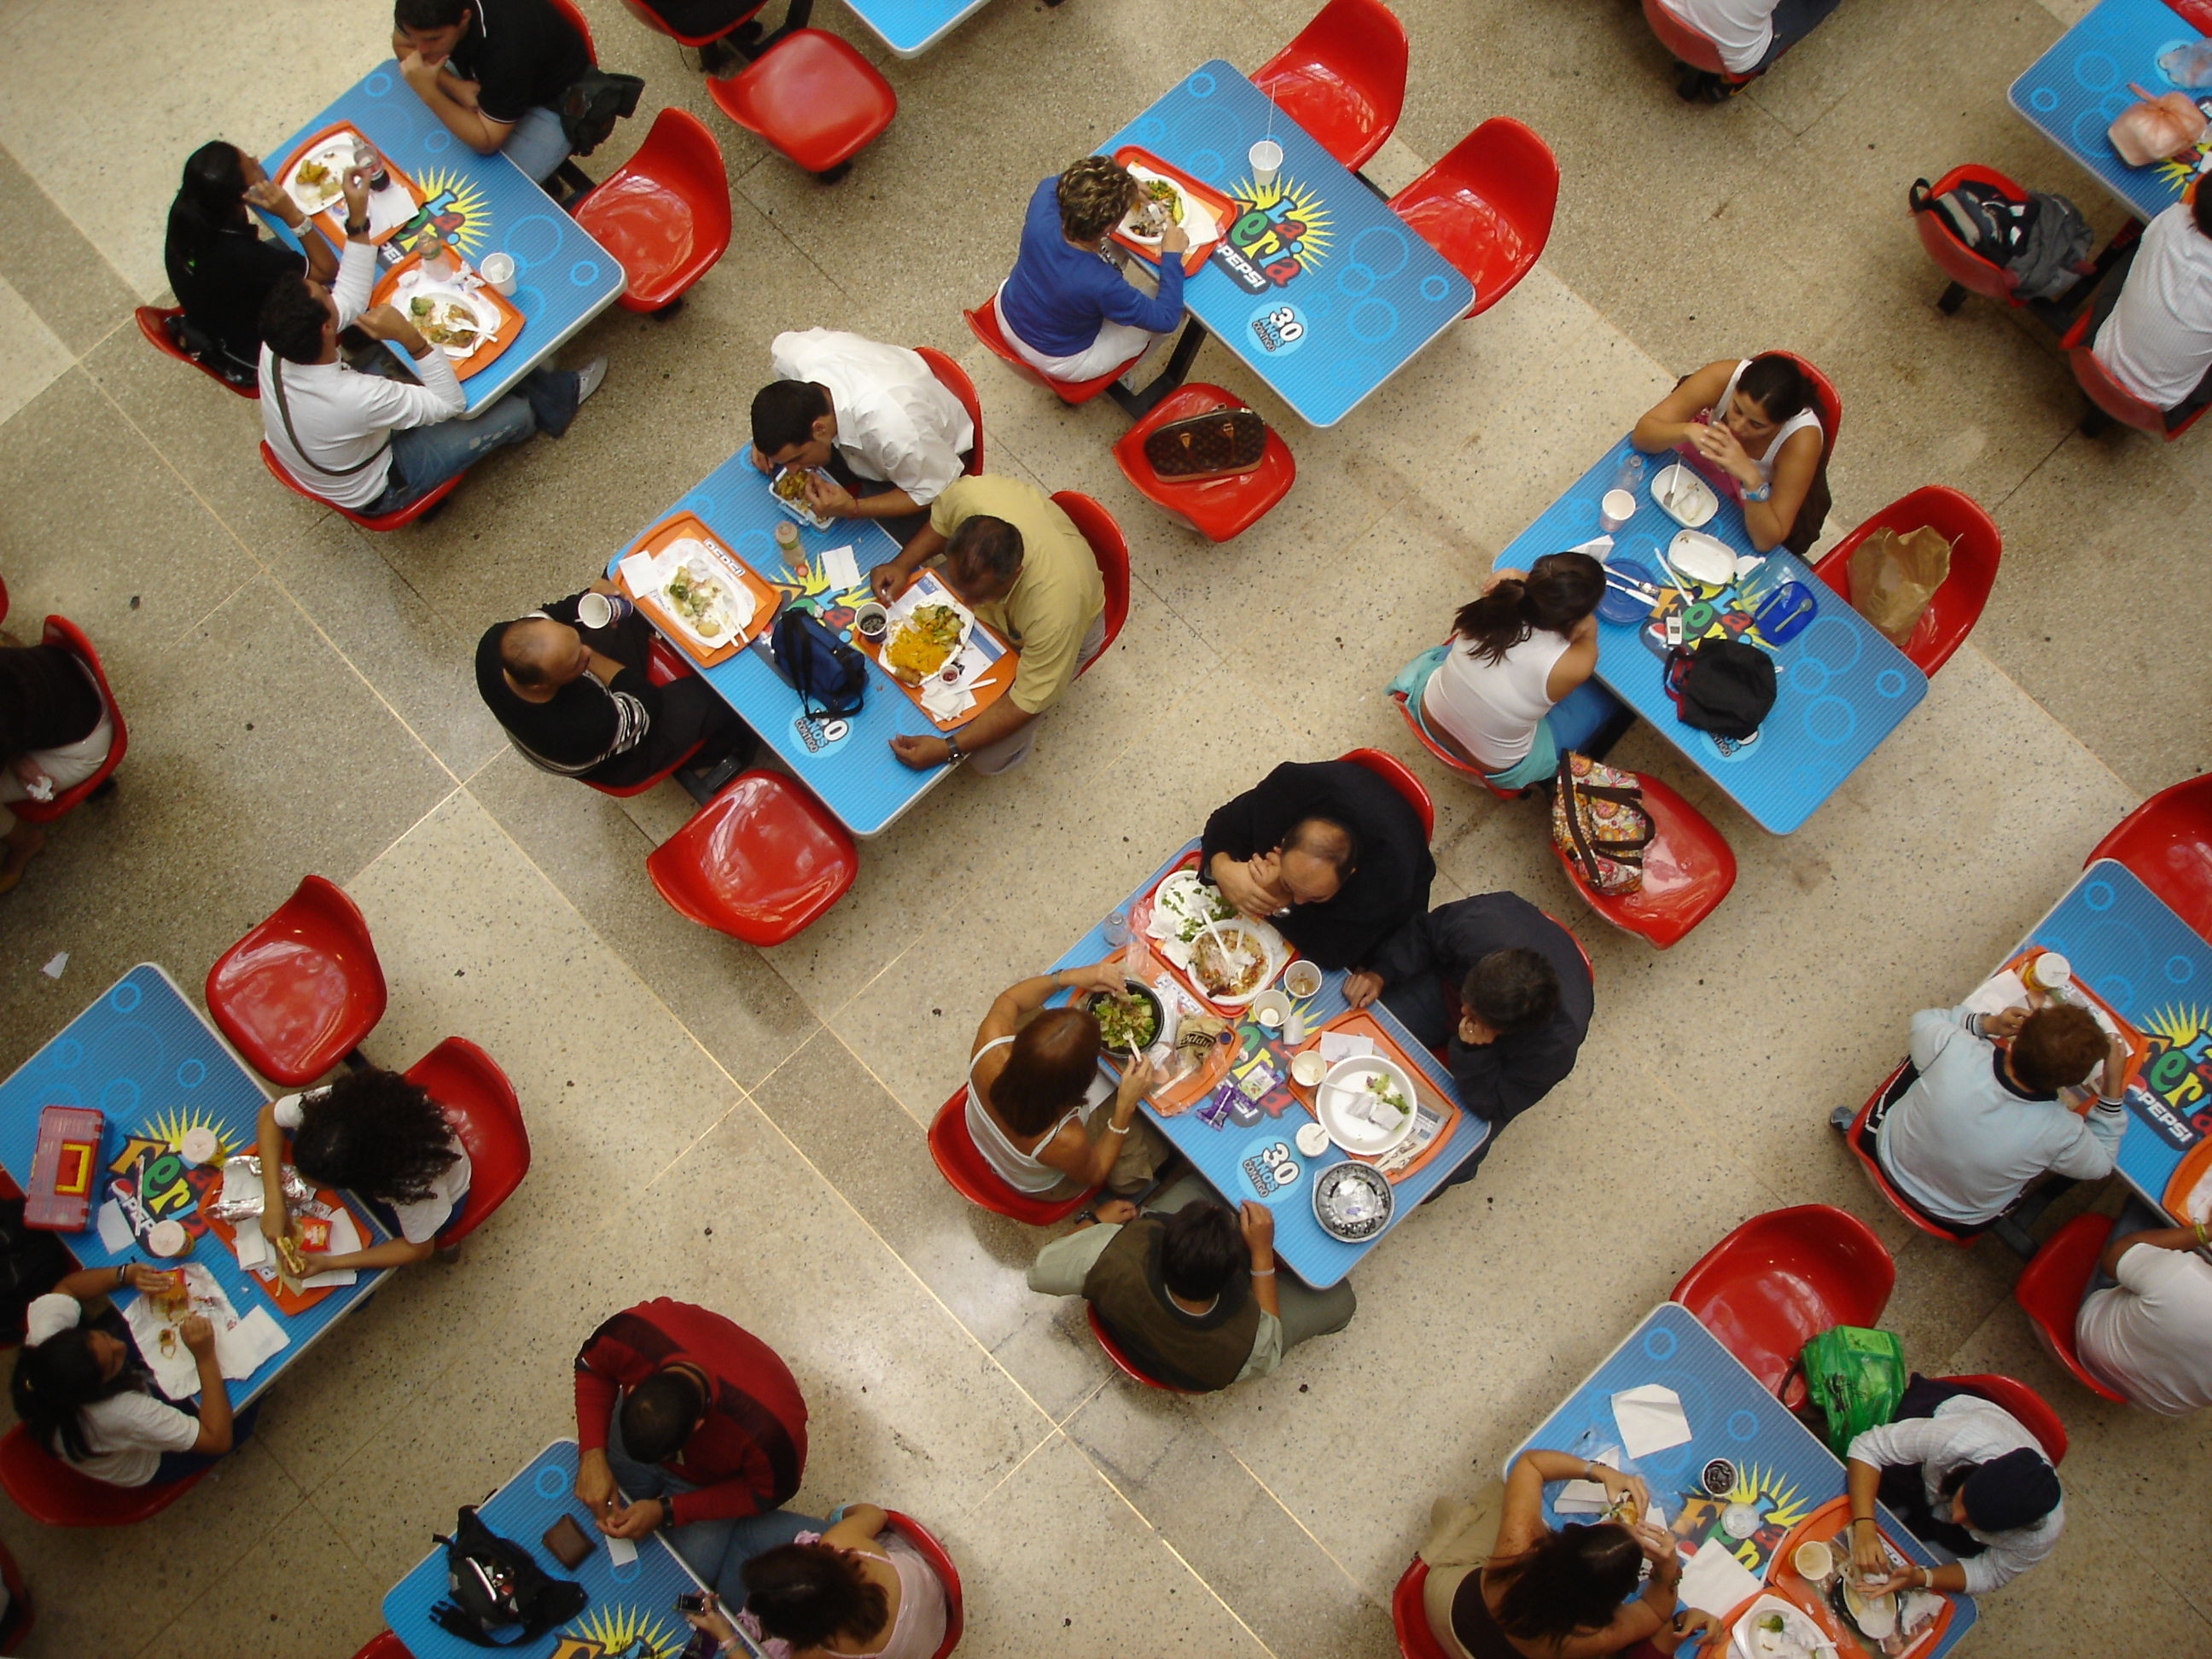 Food Courts Using Plates Instead Of Plastic